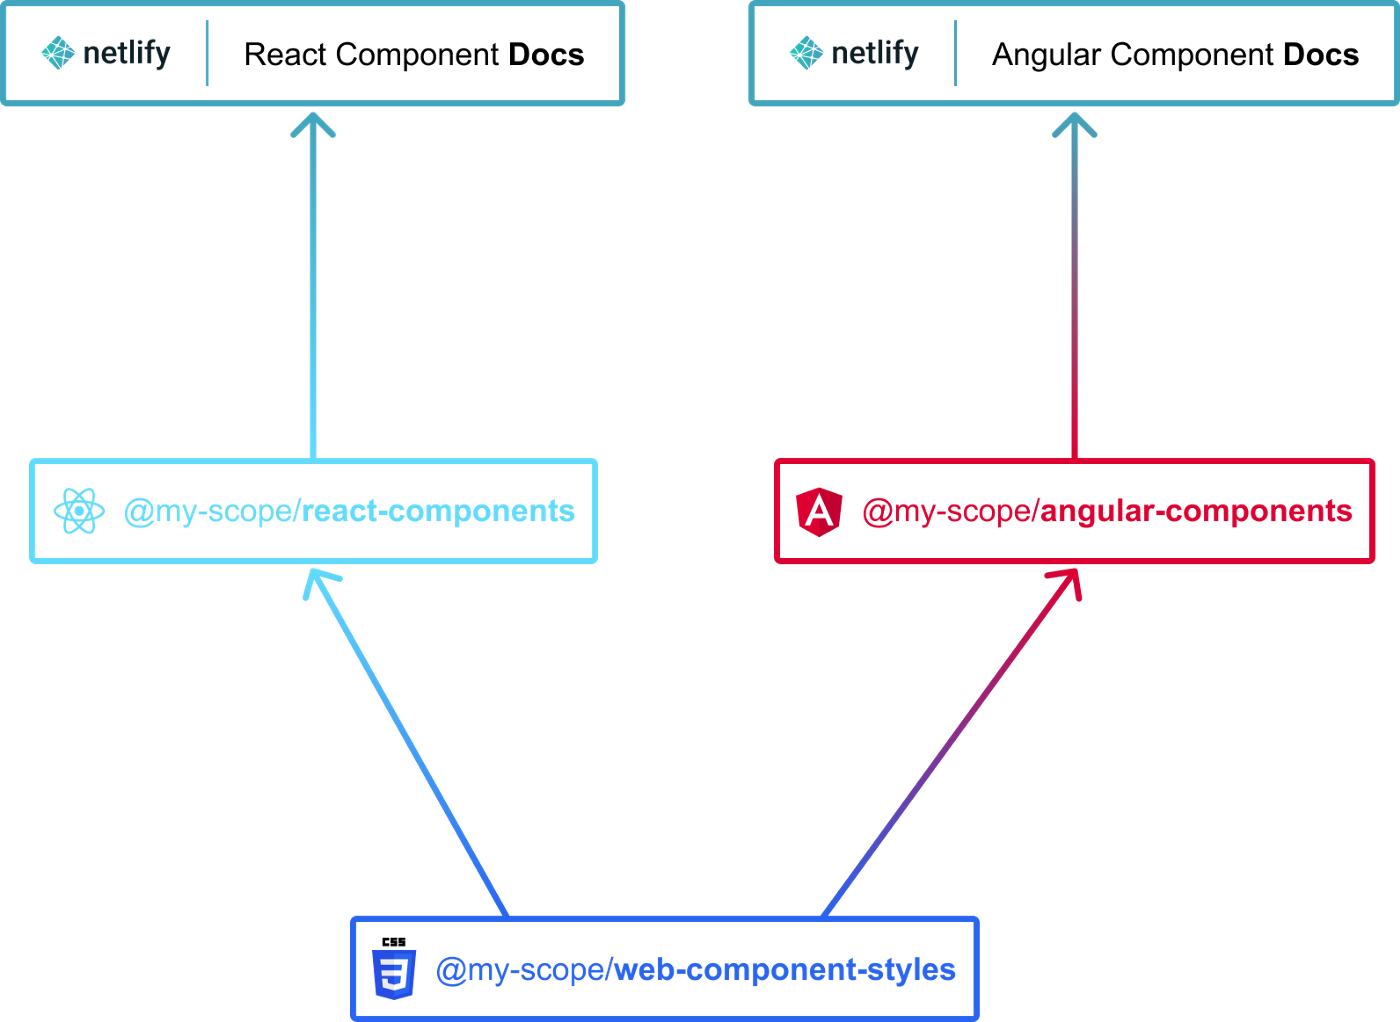 The React components docs depend on the react-components package. The Angular component docs depend on the angular-components package. The react-components and angular-components packages both depend on the web-component-styles package.